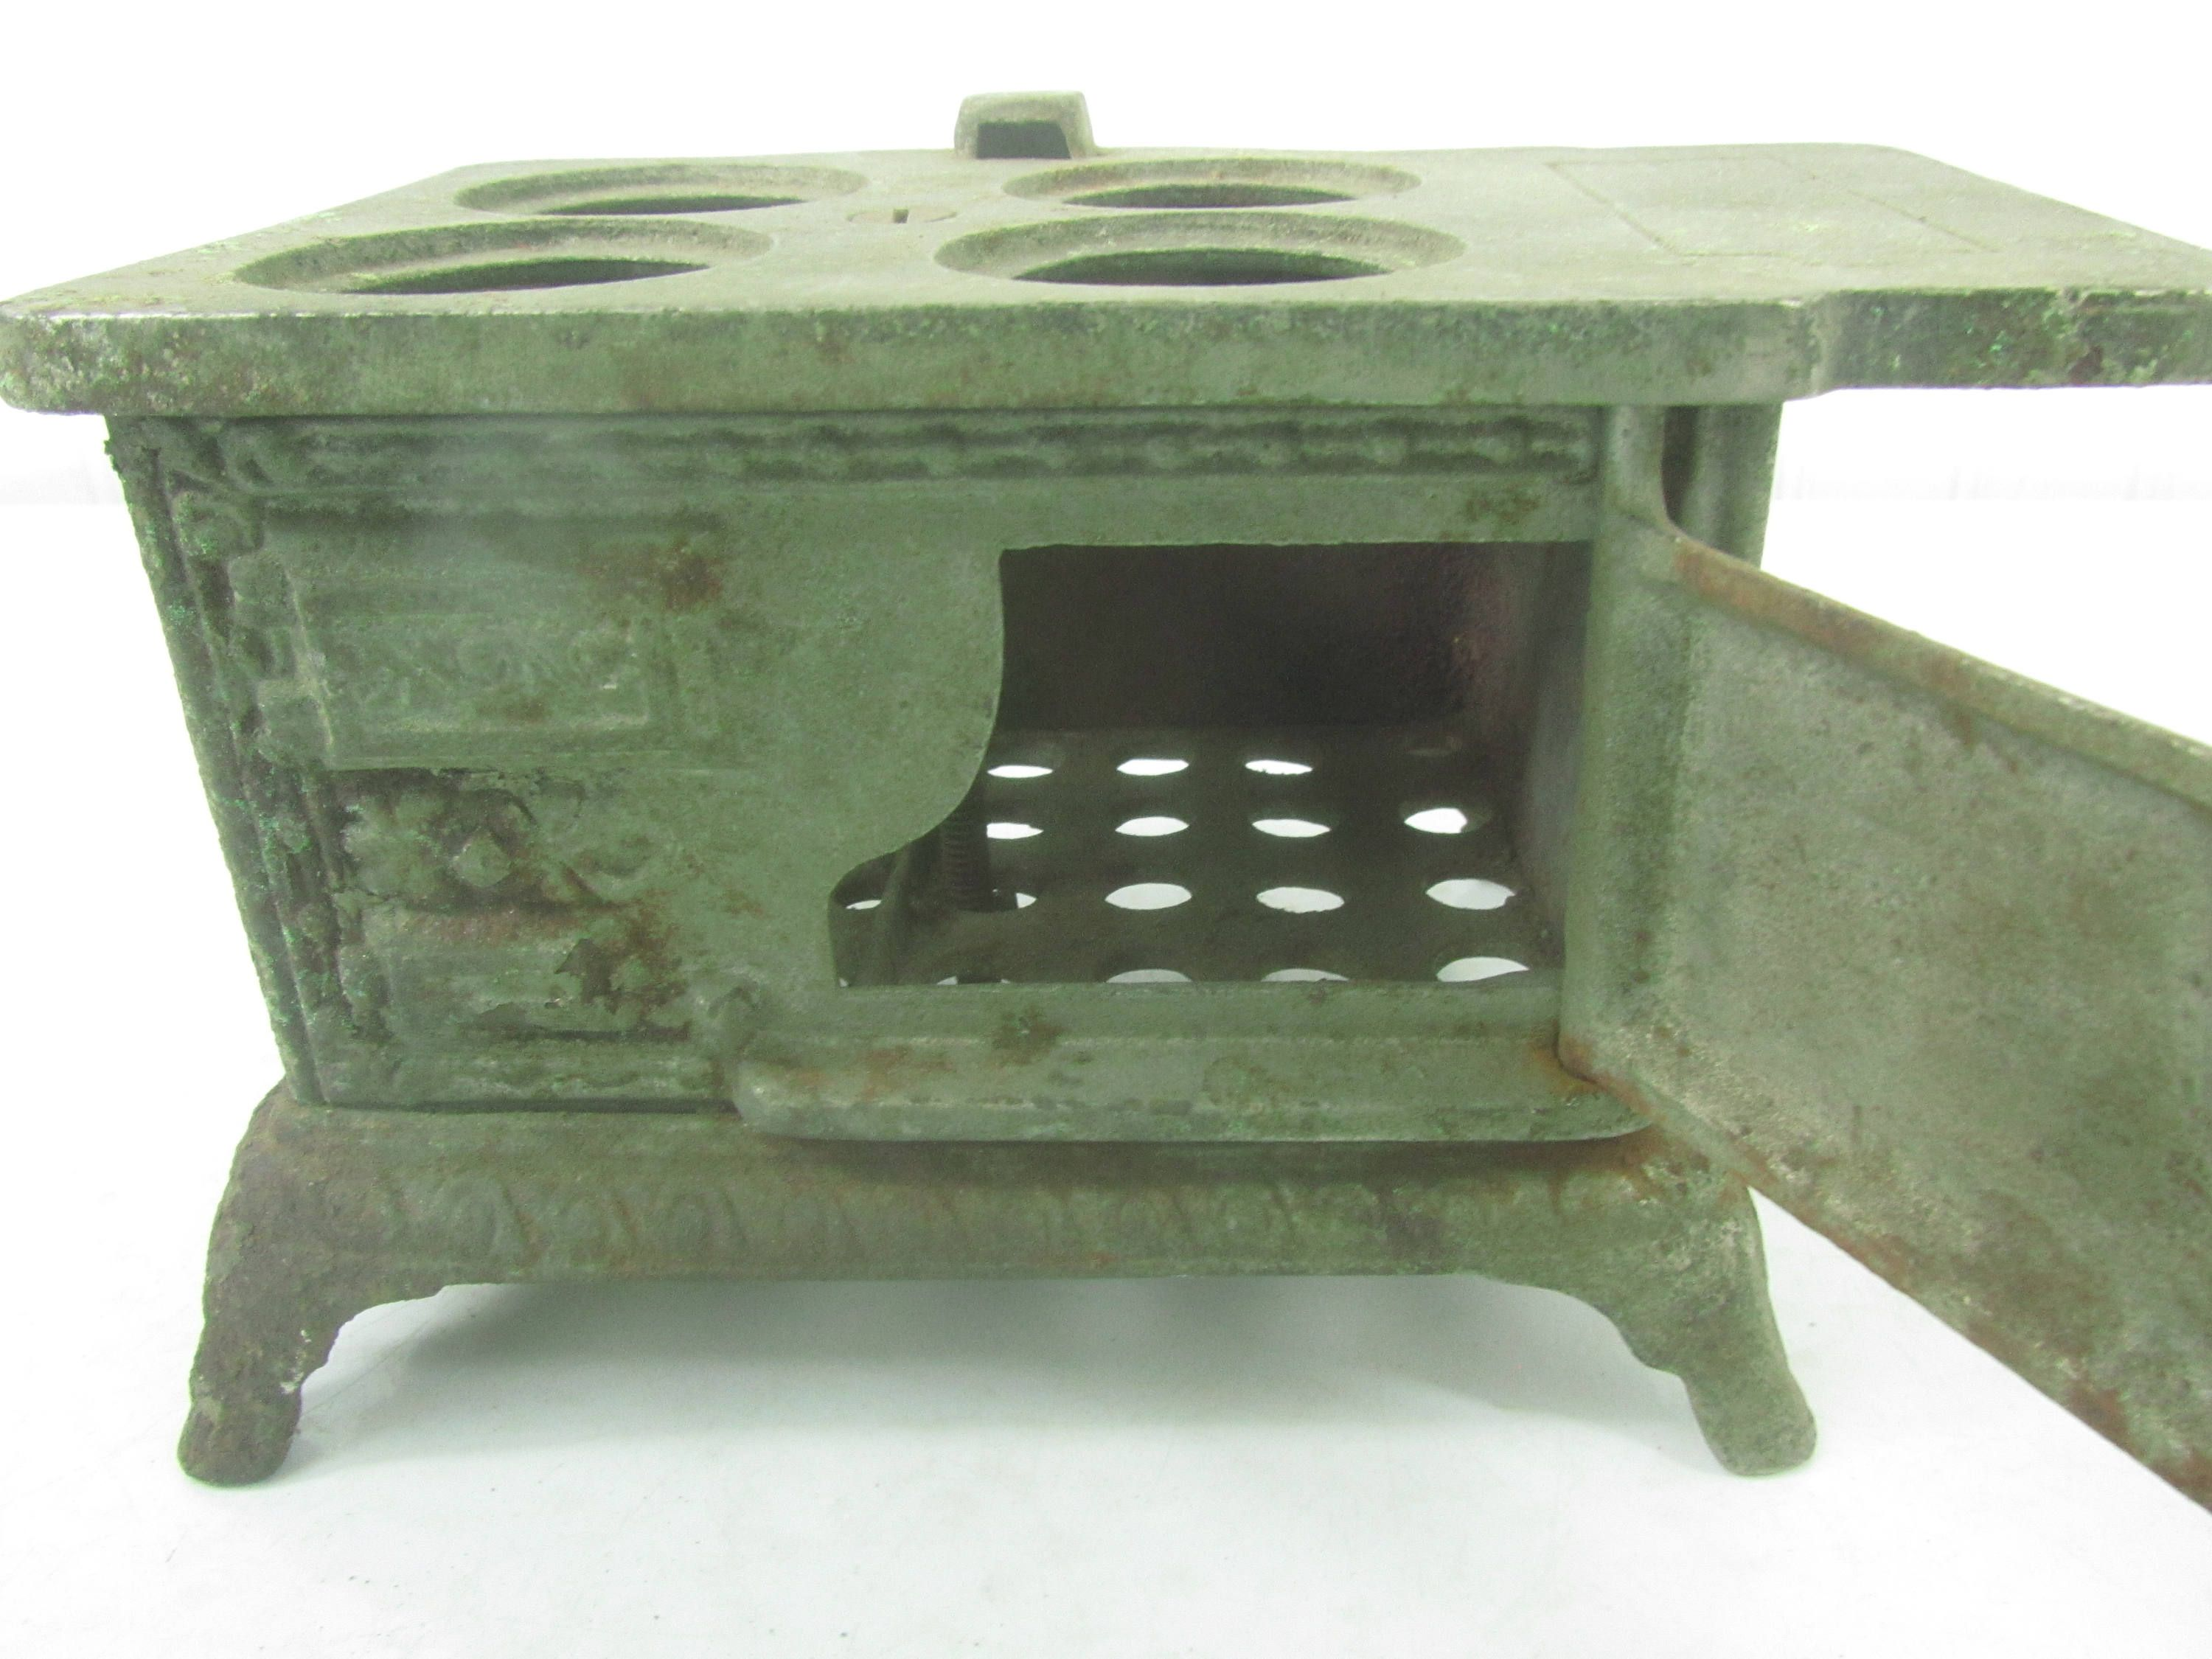 pressed metal furniture. Metal Toy Stove, Eagle Cast Iron Oven, Small Collectible Pressed Furniture .